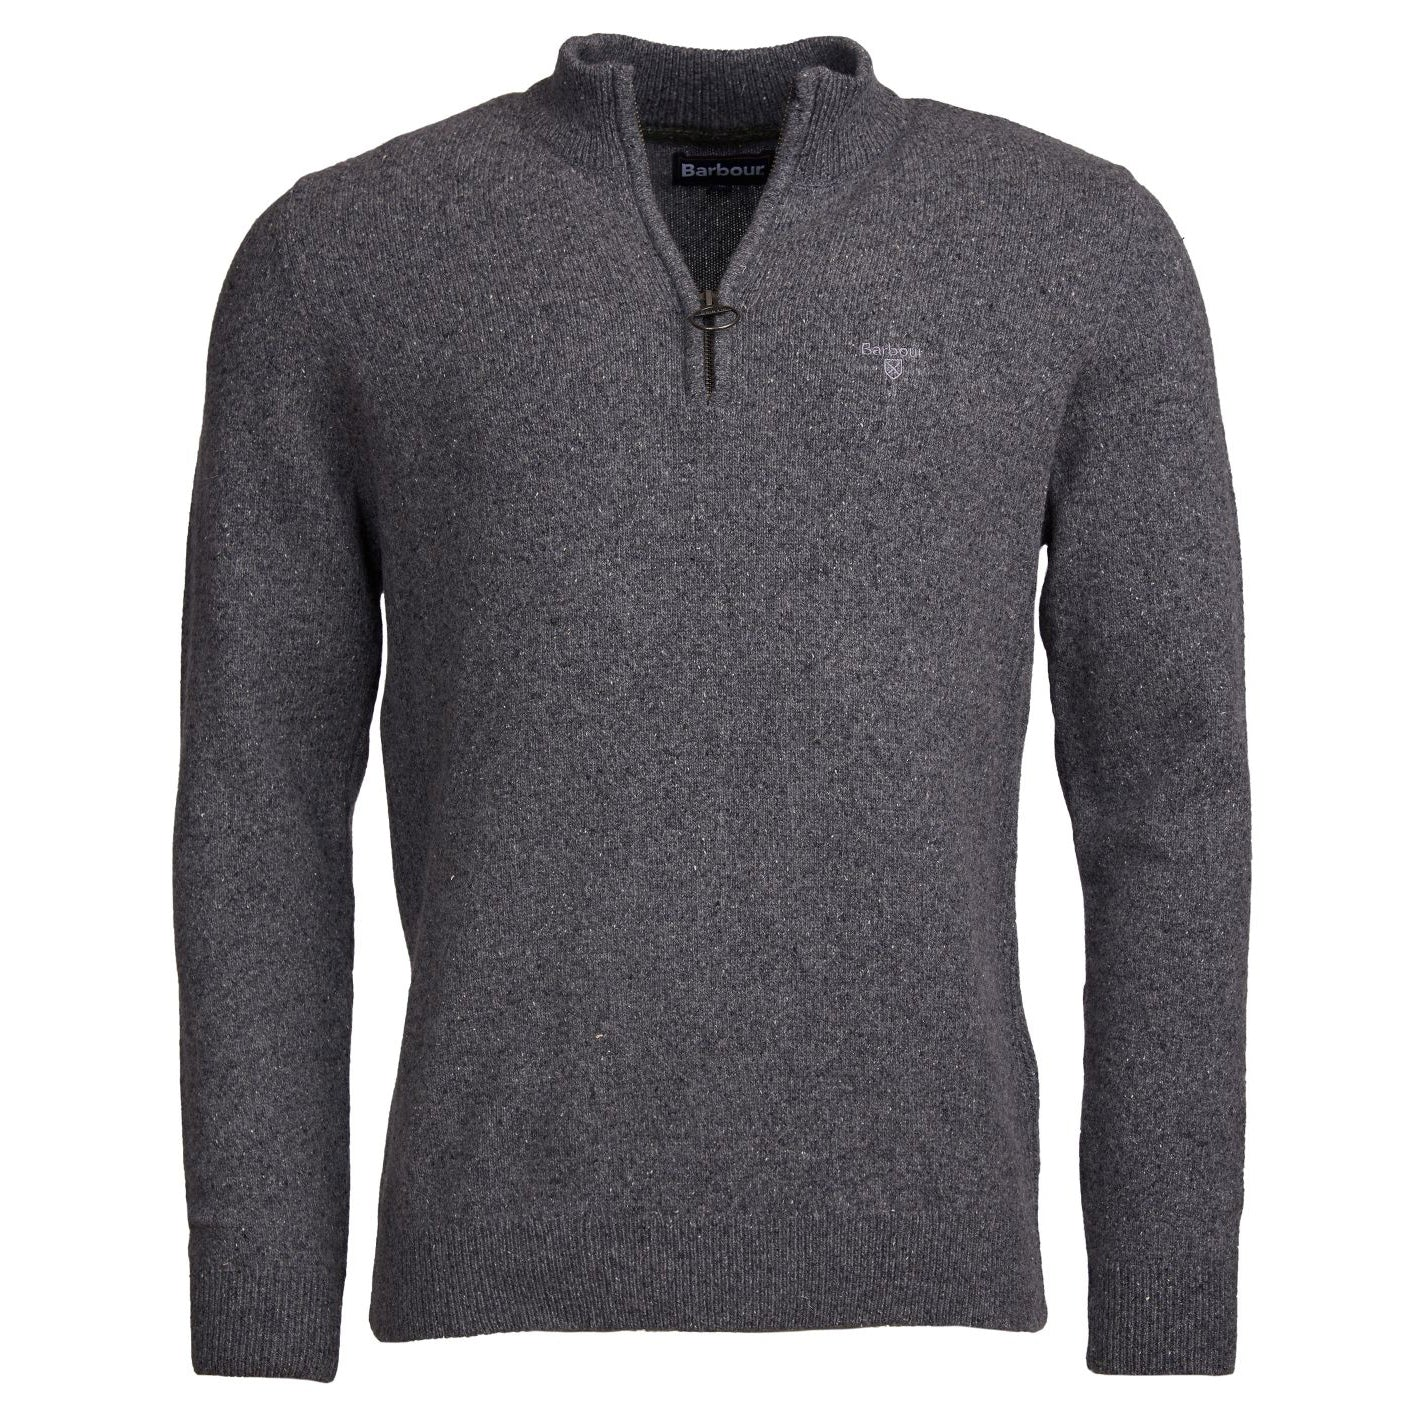 Barbour Tisbury Half Zip Jumper Grey